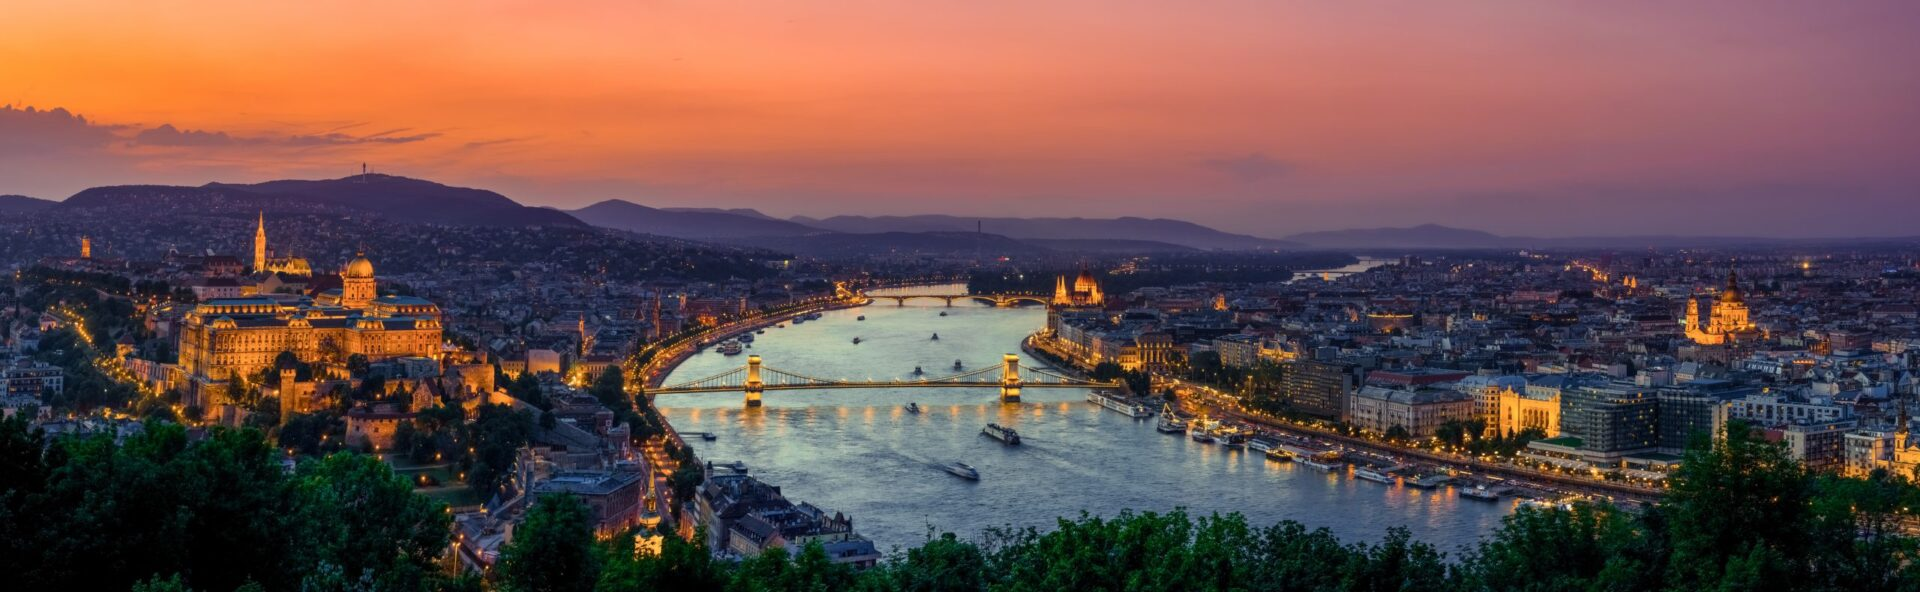 Budapest, Hungary sunset view with Danube river, Parliament, Castle. View from Gellert Hill